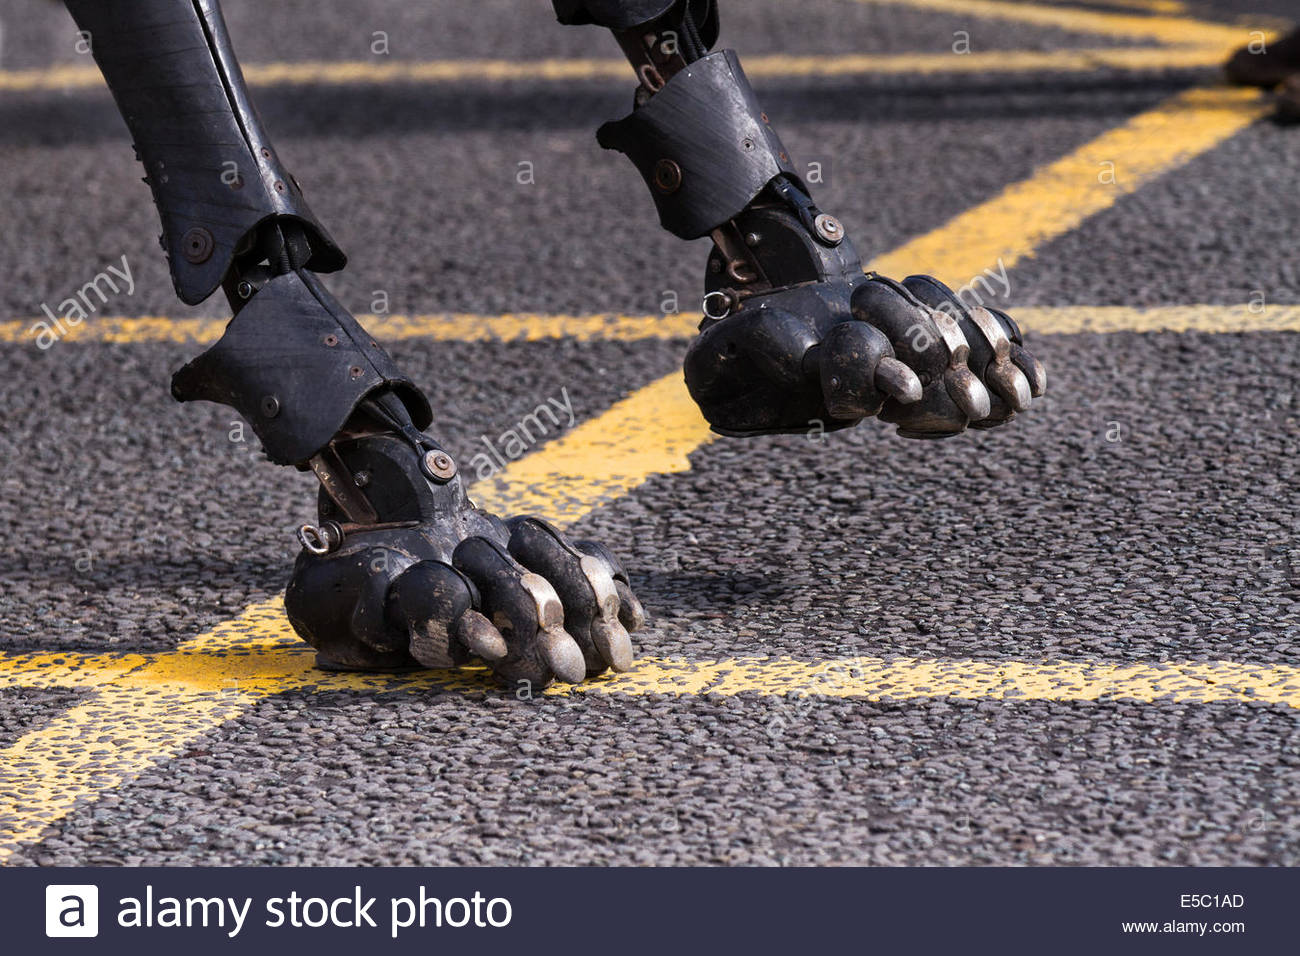 Liverpool, Merseyside, UK 27th July, 2014. Giant footsteps by Xolo a Giant Dog at World War One centenary event. - Stock Image